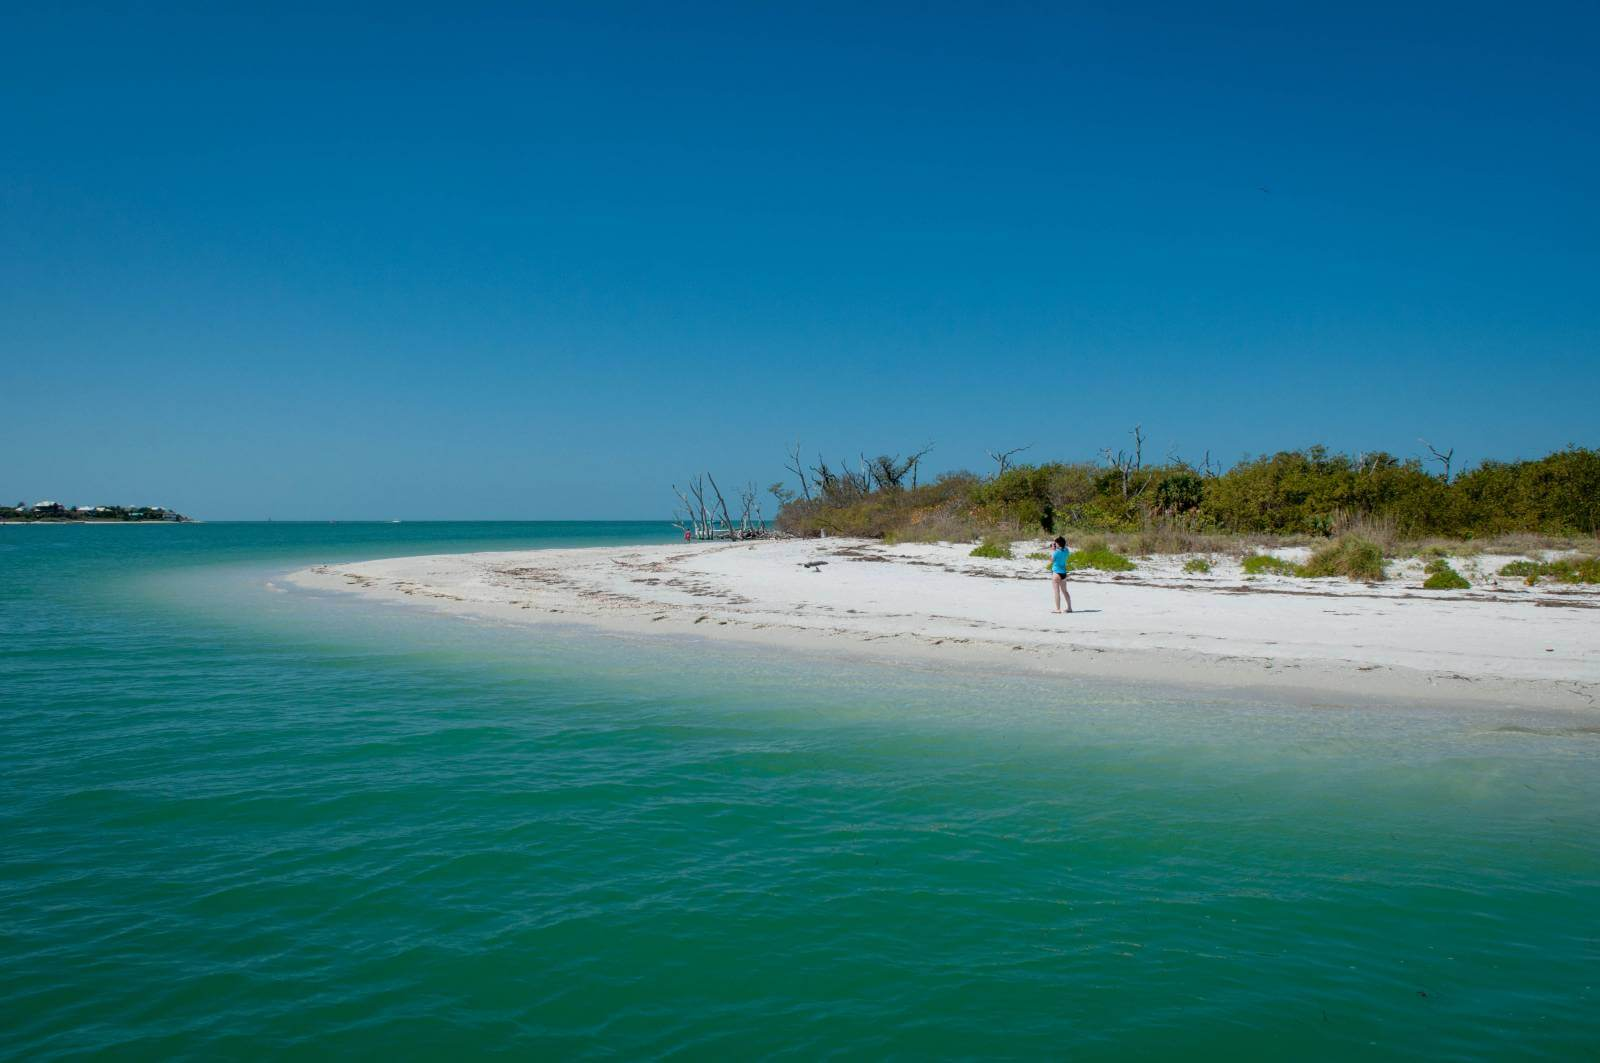 Fort Myers, Florida area offers plenty of kayaking and boating to island hop. A stop at the unspoiled Cayo Costa will make you feel like castaways on a girls getaway adventure. Must Do Visitor Guides, MustDo.com